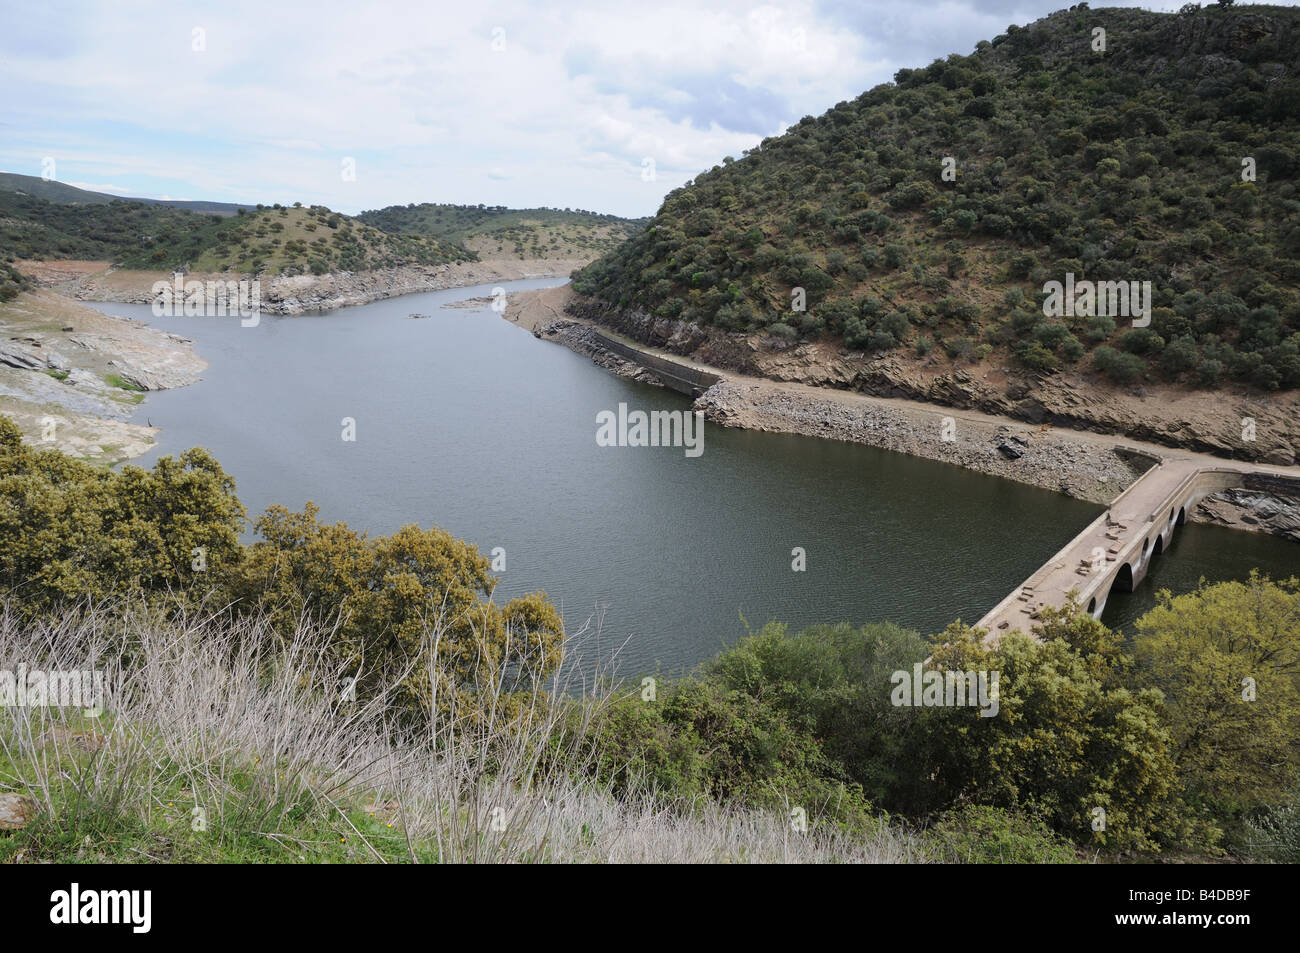 View of river Rio Tajo and valley with low level water during drought Spain - Stock Image